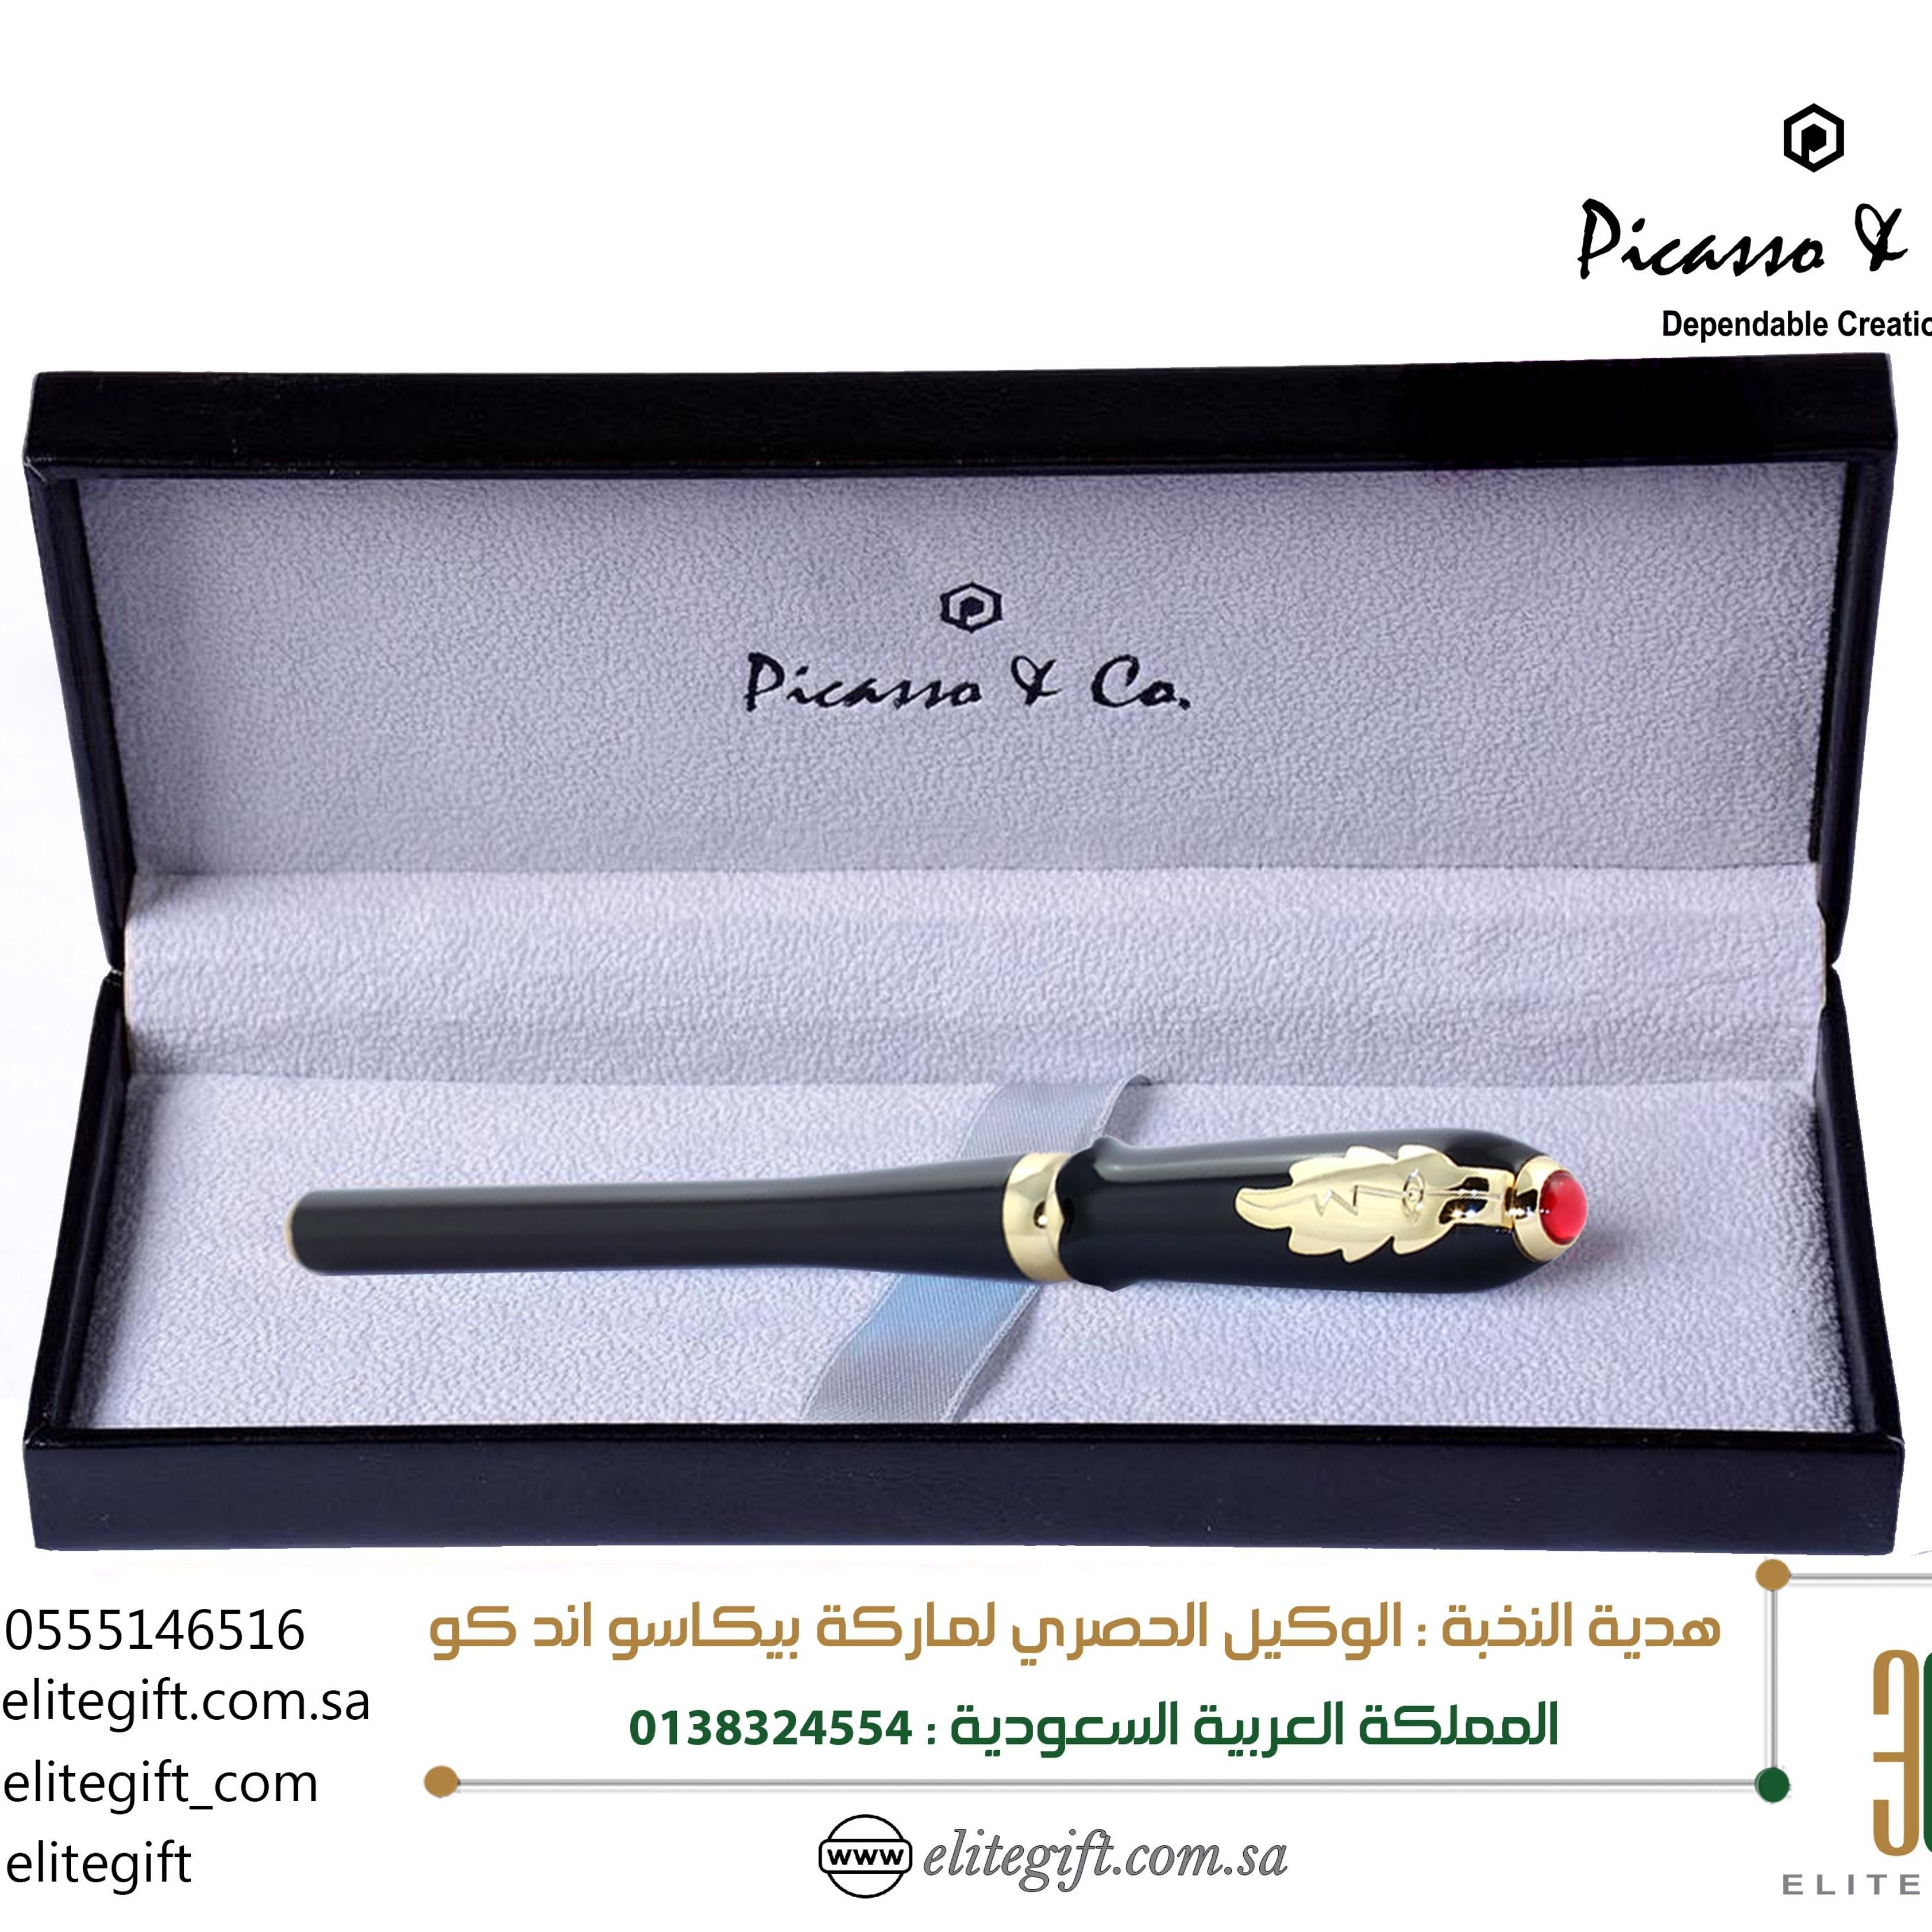 Picasso Pen Writing Instruments Picasso Pen